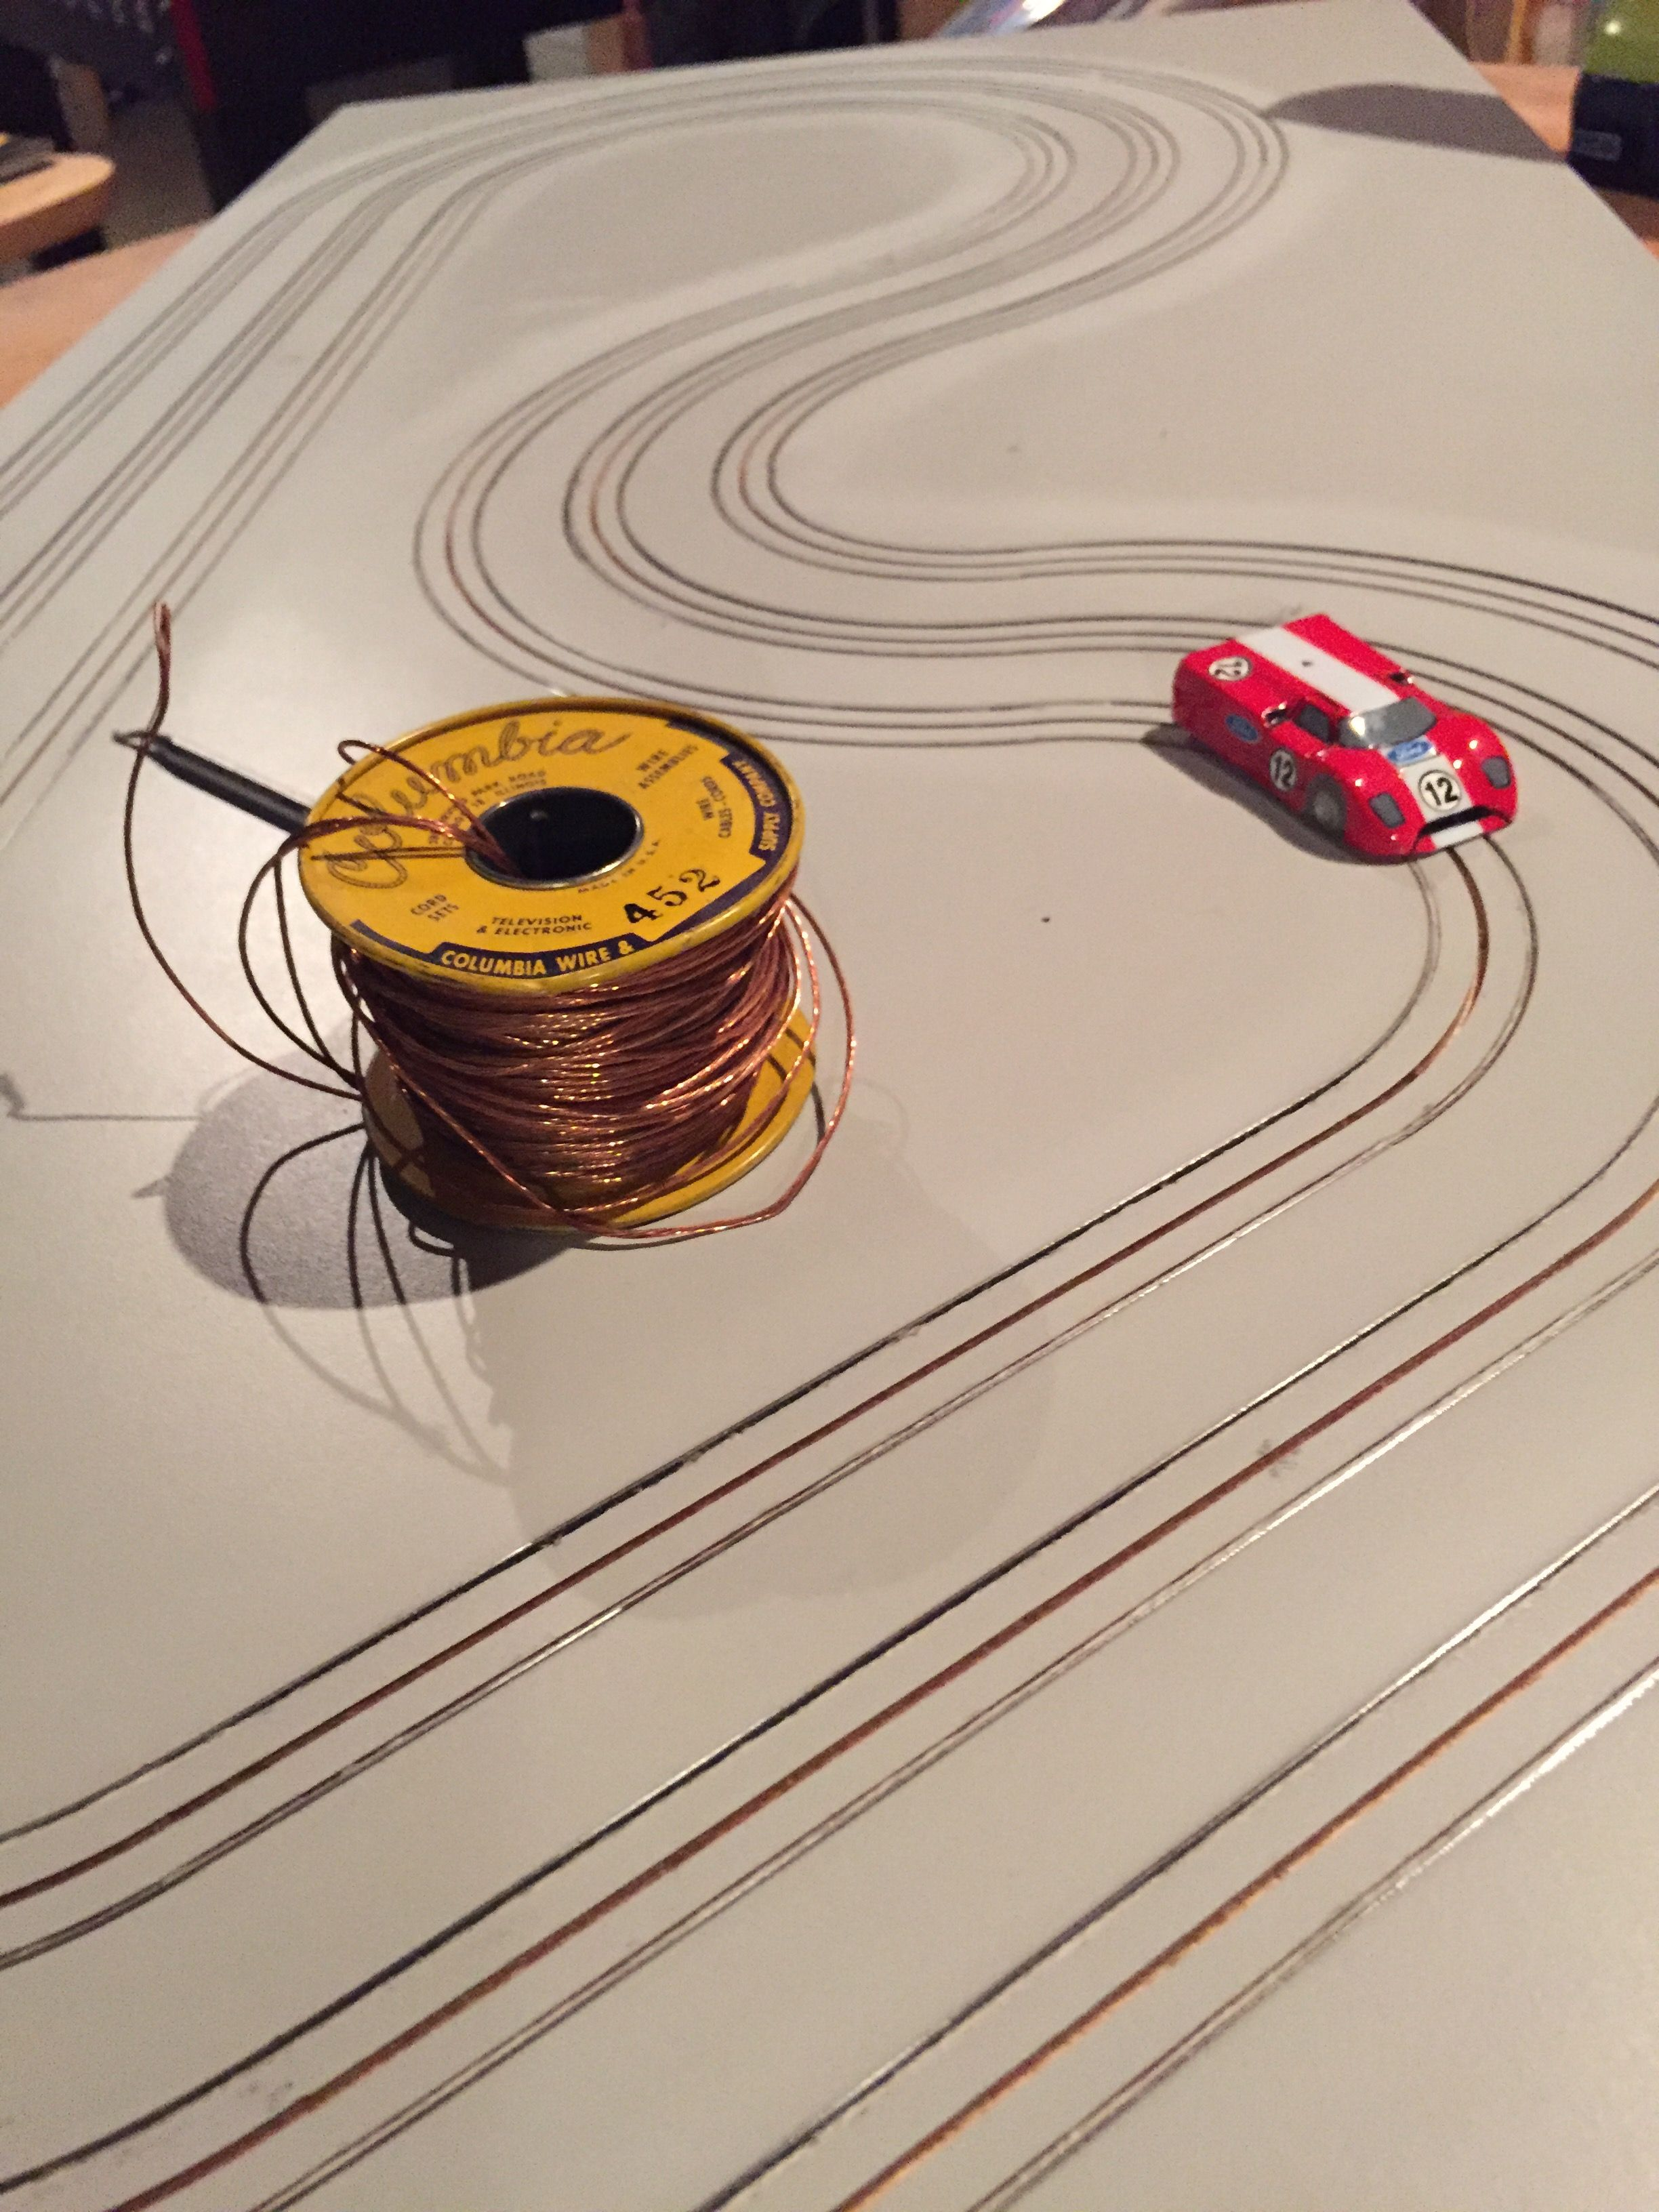 medium resolution of ho routed slot car track finishing up